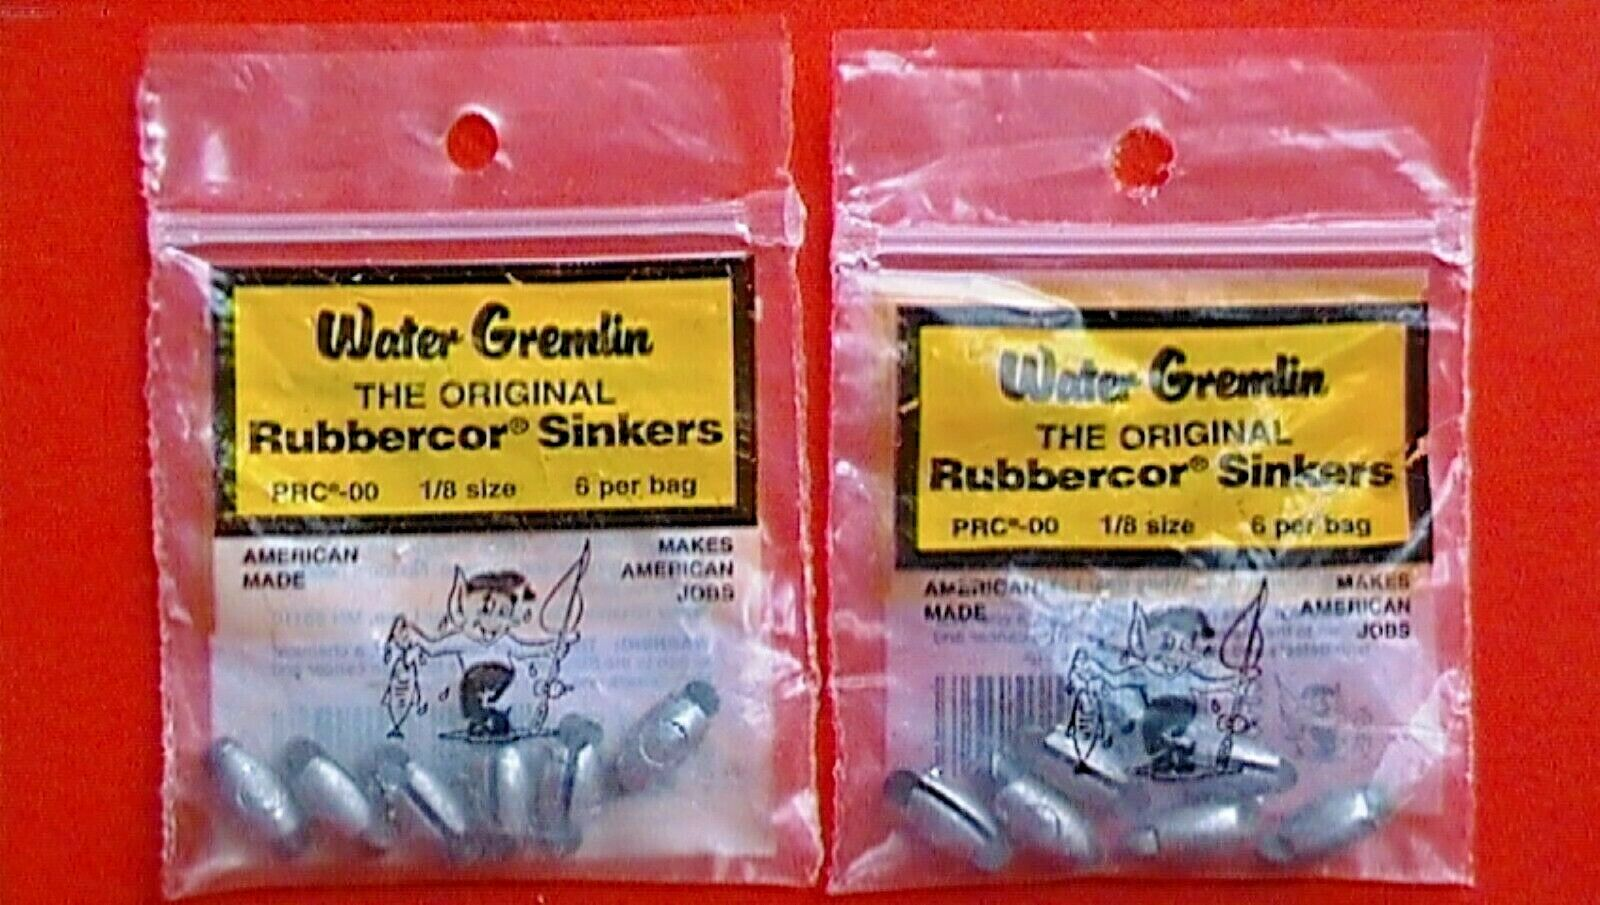 3 Bags of Water Gremlin Rubbercor Sinkers PRC-2  9 total pieces  1//2 Size  NEW